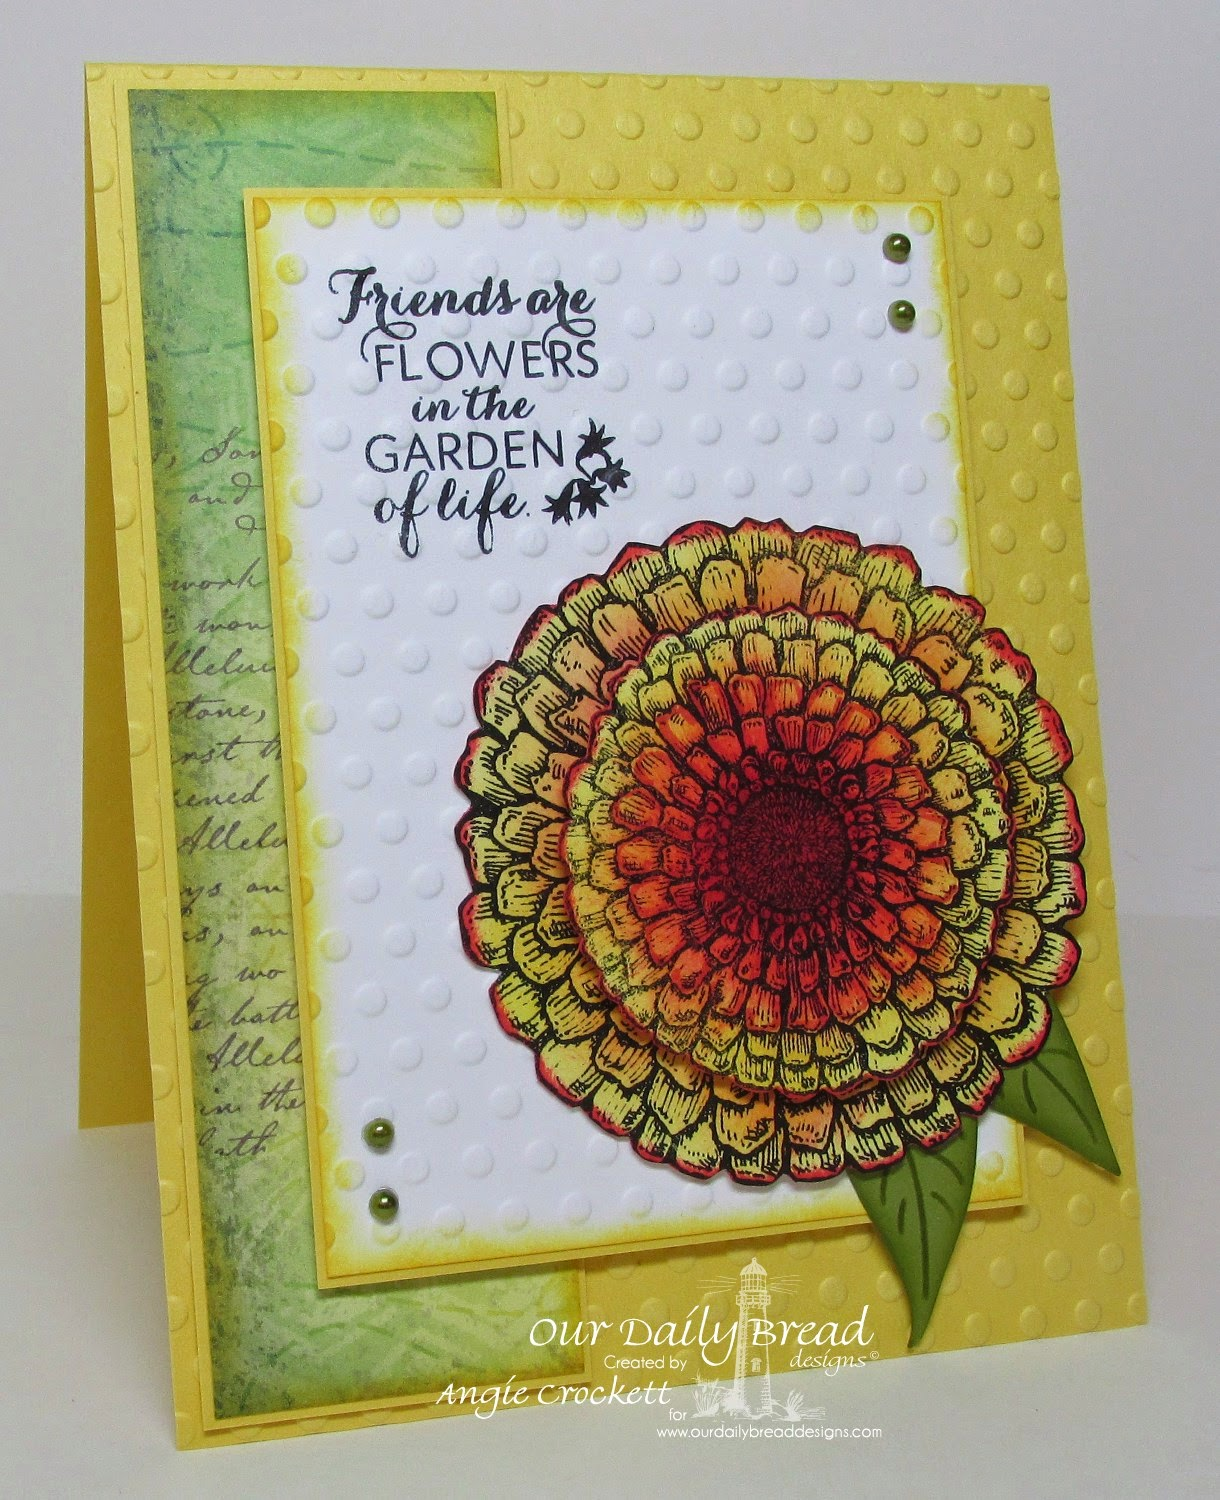 ODBD Zinnia, ODBD Custom Zinnia and Leaves Die Set, Blooming Garden Designer Paper Collection, Card Designer Angie Crockett